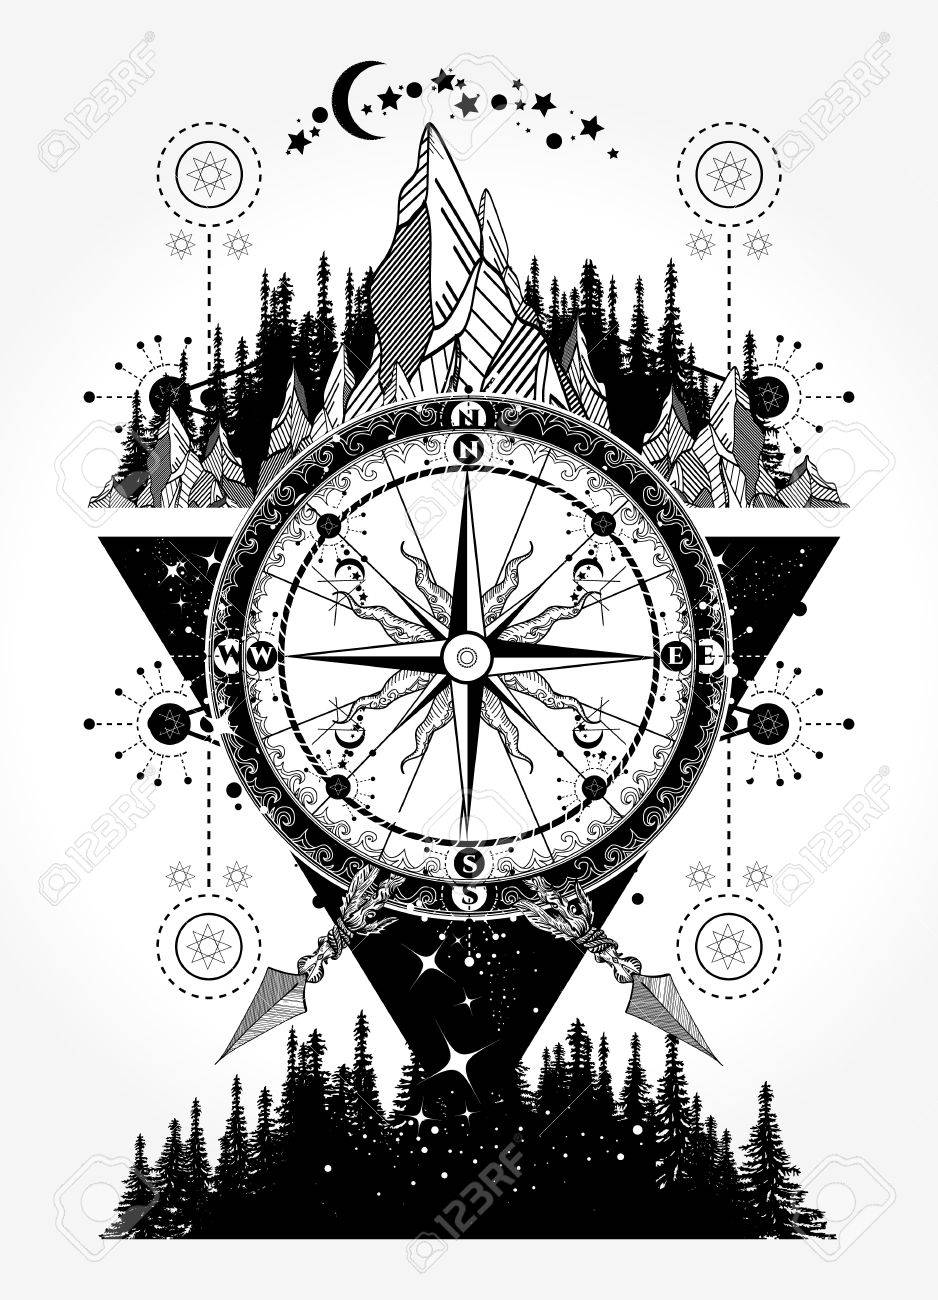 Mountains And Antique Compass Tattoo Art Royalty Free Cliparts Vectors And Stock Illustration Image 84742368 Watercolor tattoos incorporate vibrant color, brush strokes, ink drips and dynamic art feed into each of the designs creating body art, not just a tattoo. mountains and antique compass tattoo art